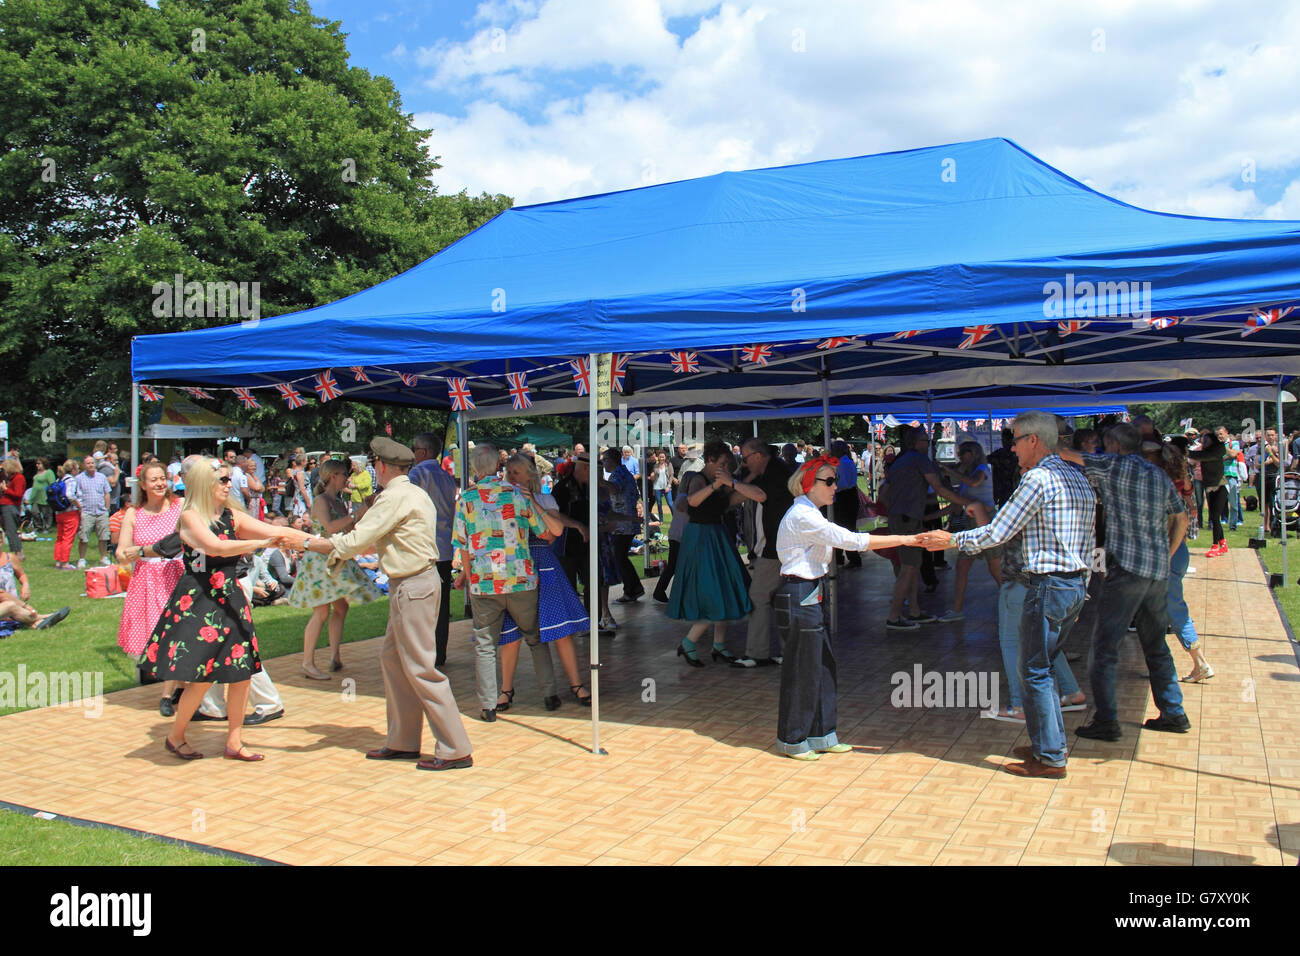 Jive and Swing dance tent Hanworth Classic Car Show 26th June 2016. Bushy Park H&ton Court London Borough of Richmond England Great Britain ... & Jive and Swing dance tent Hanworth Classic Car Show 26th June ...